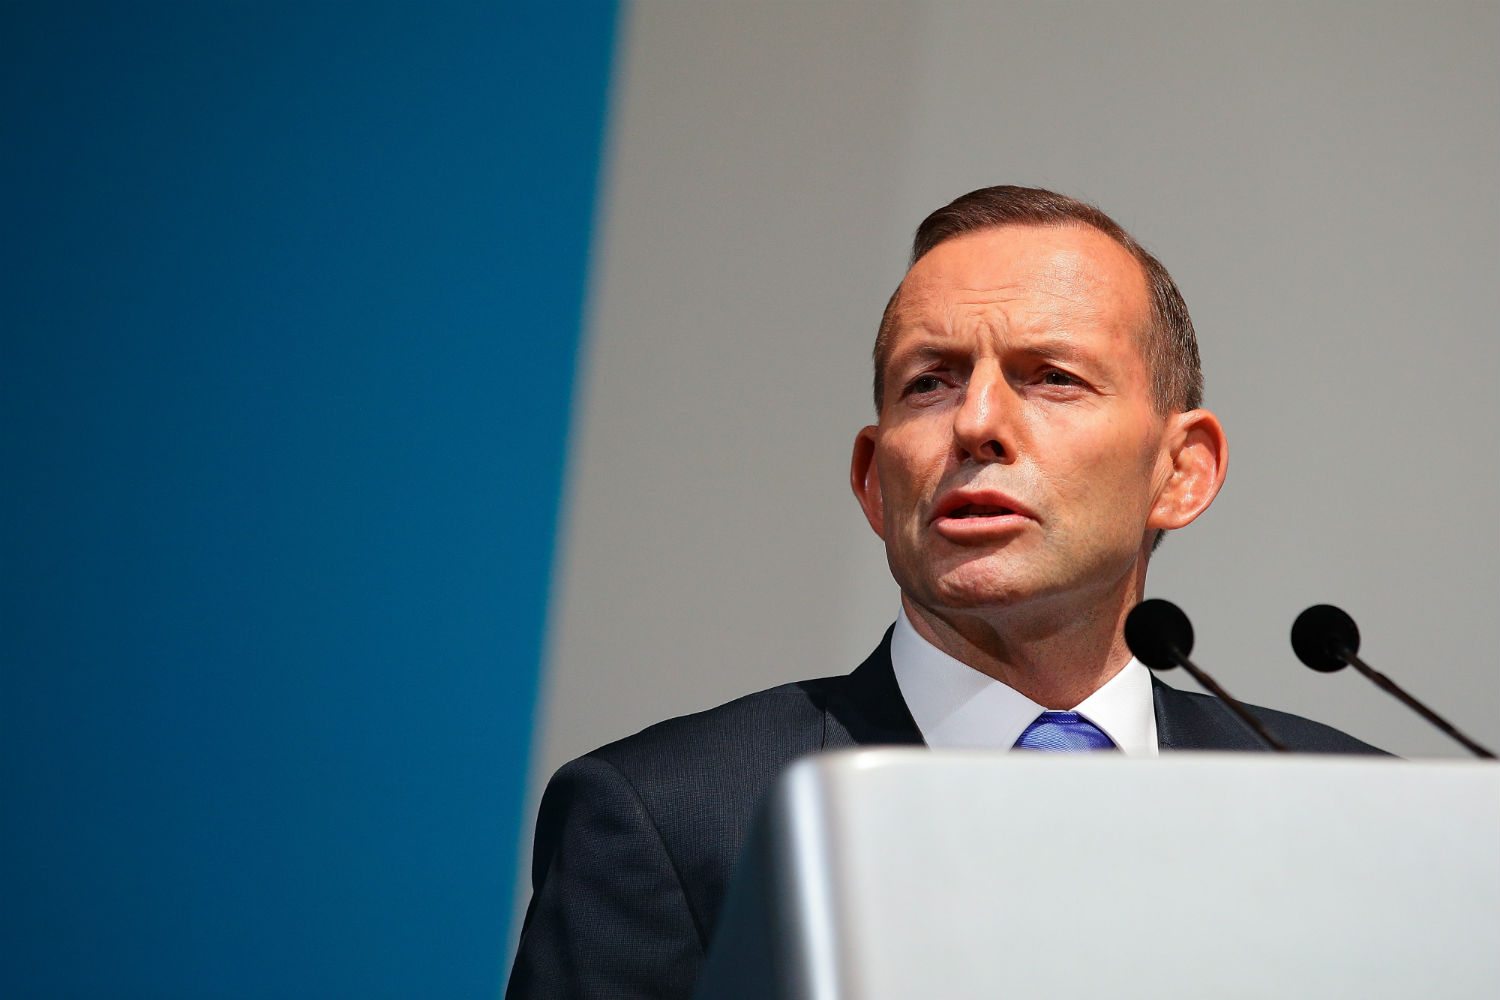 Abbott reforms endorsed by Liberals